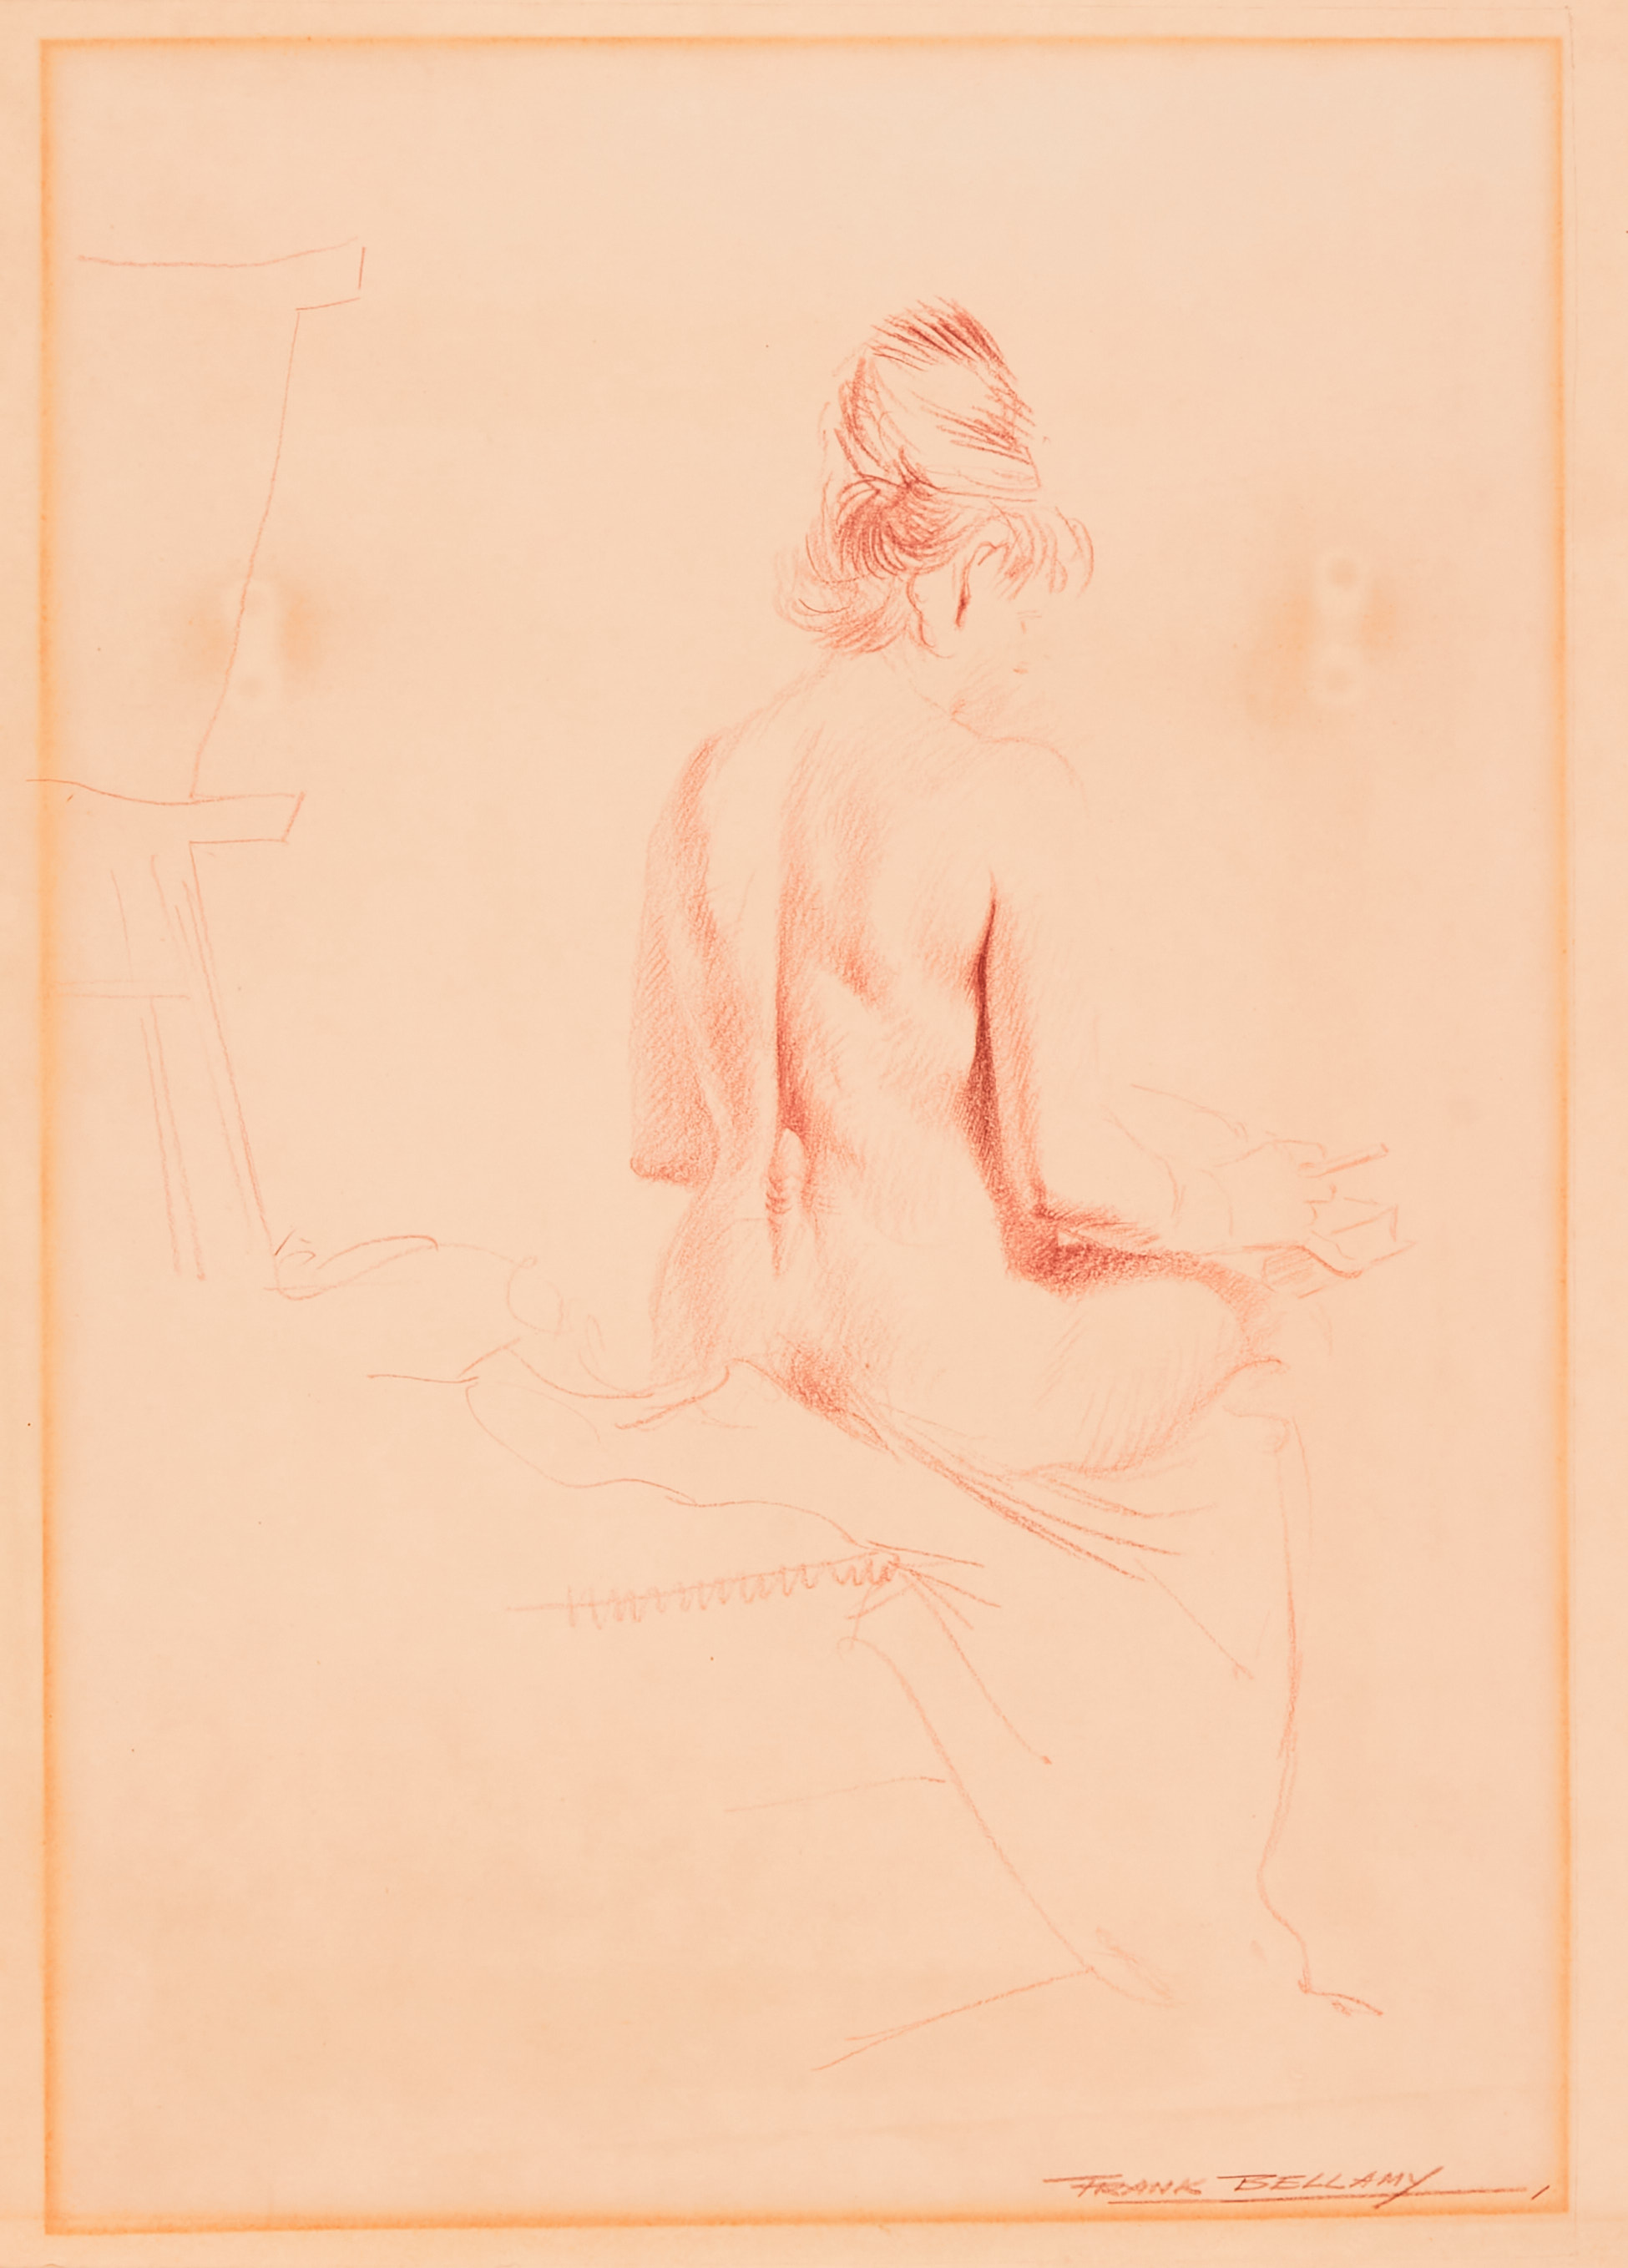 Nude study drawn and signed by Frank Bellamy (mid 1960s). During this time Frank Bellamy ran and